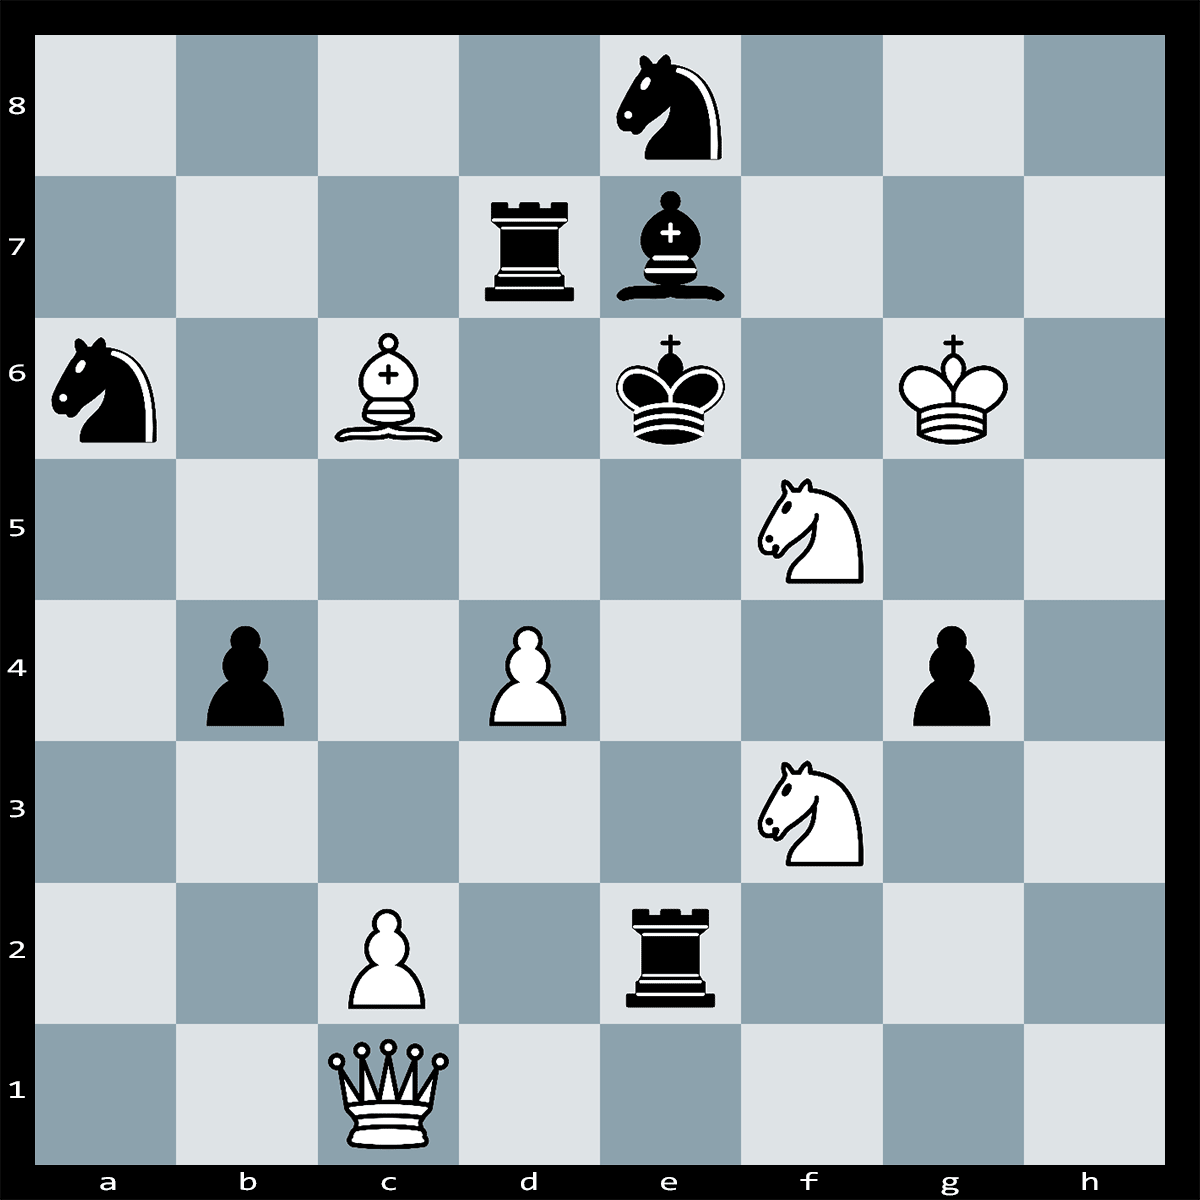 Chess Puzzle #151 - Find checkmate in four moves, white to play.